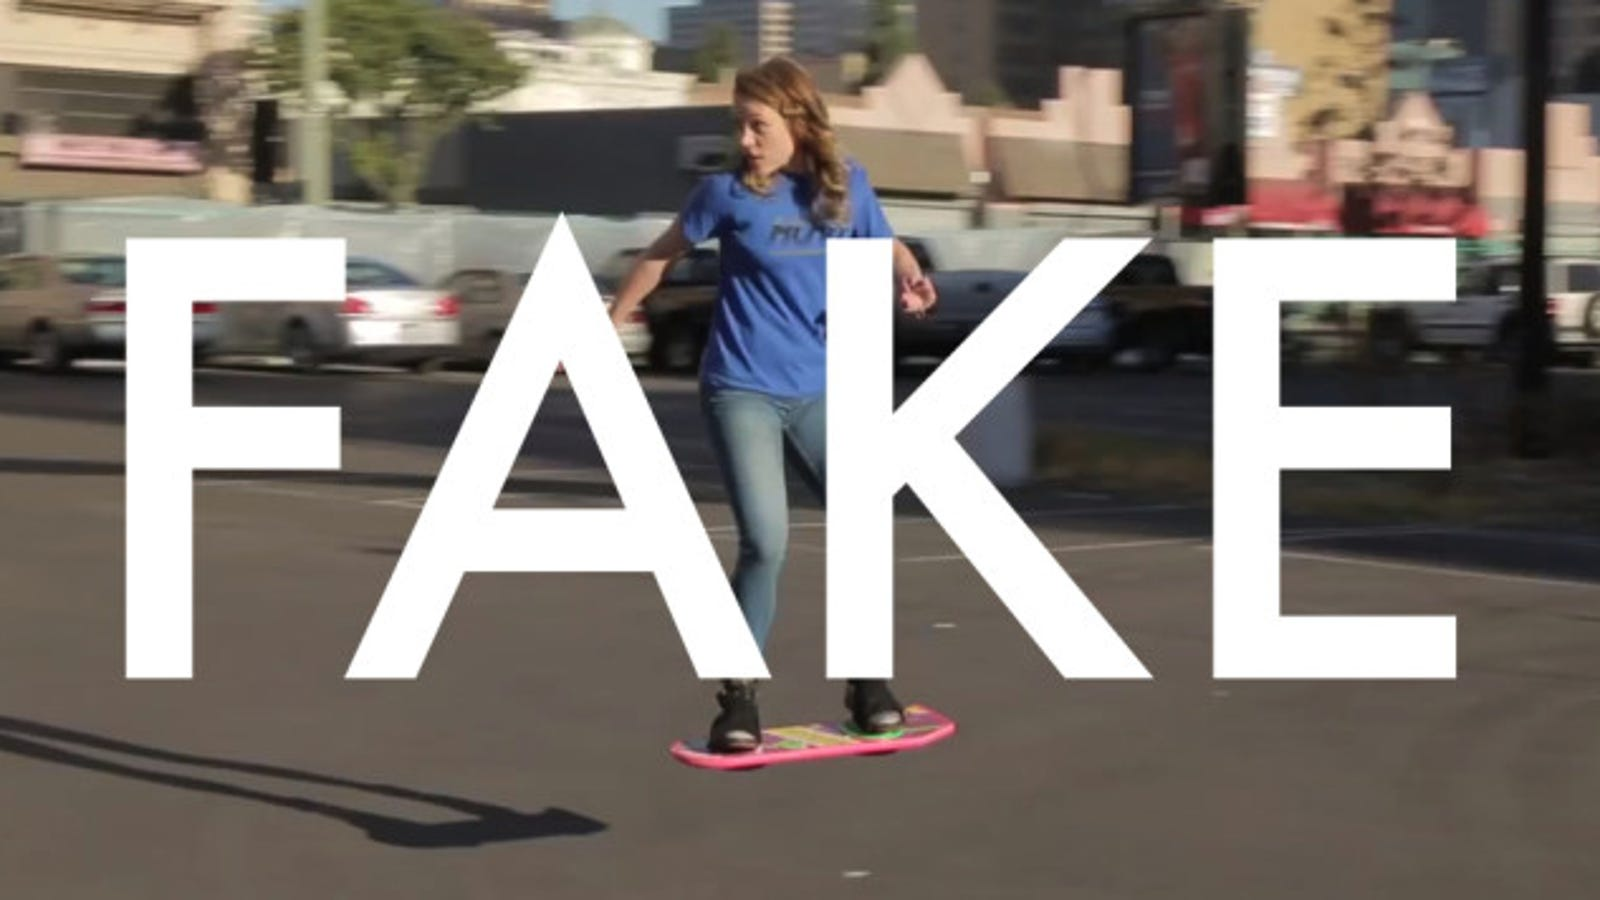 Fake LIVR App, Fake Hoverboard, The New Cosmos, and More